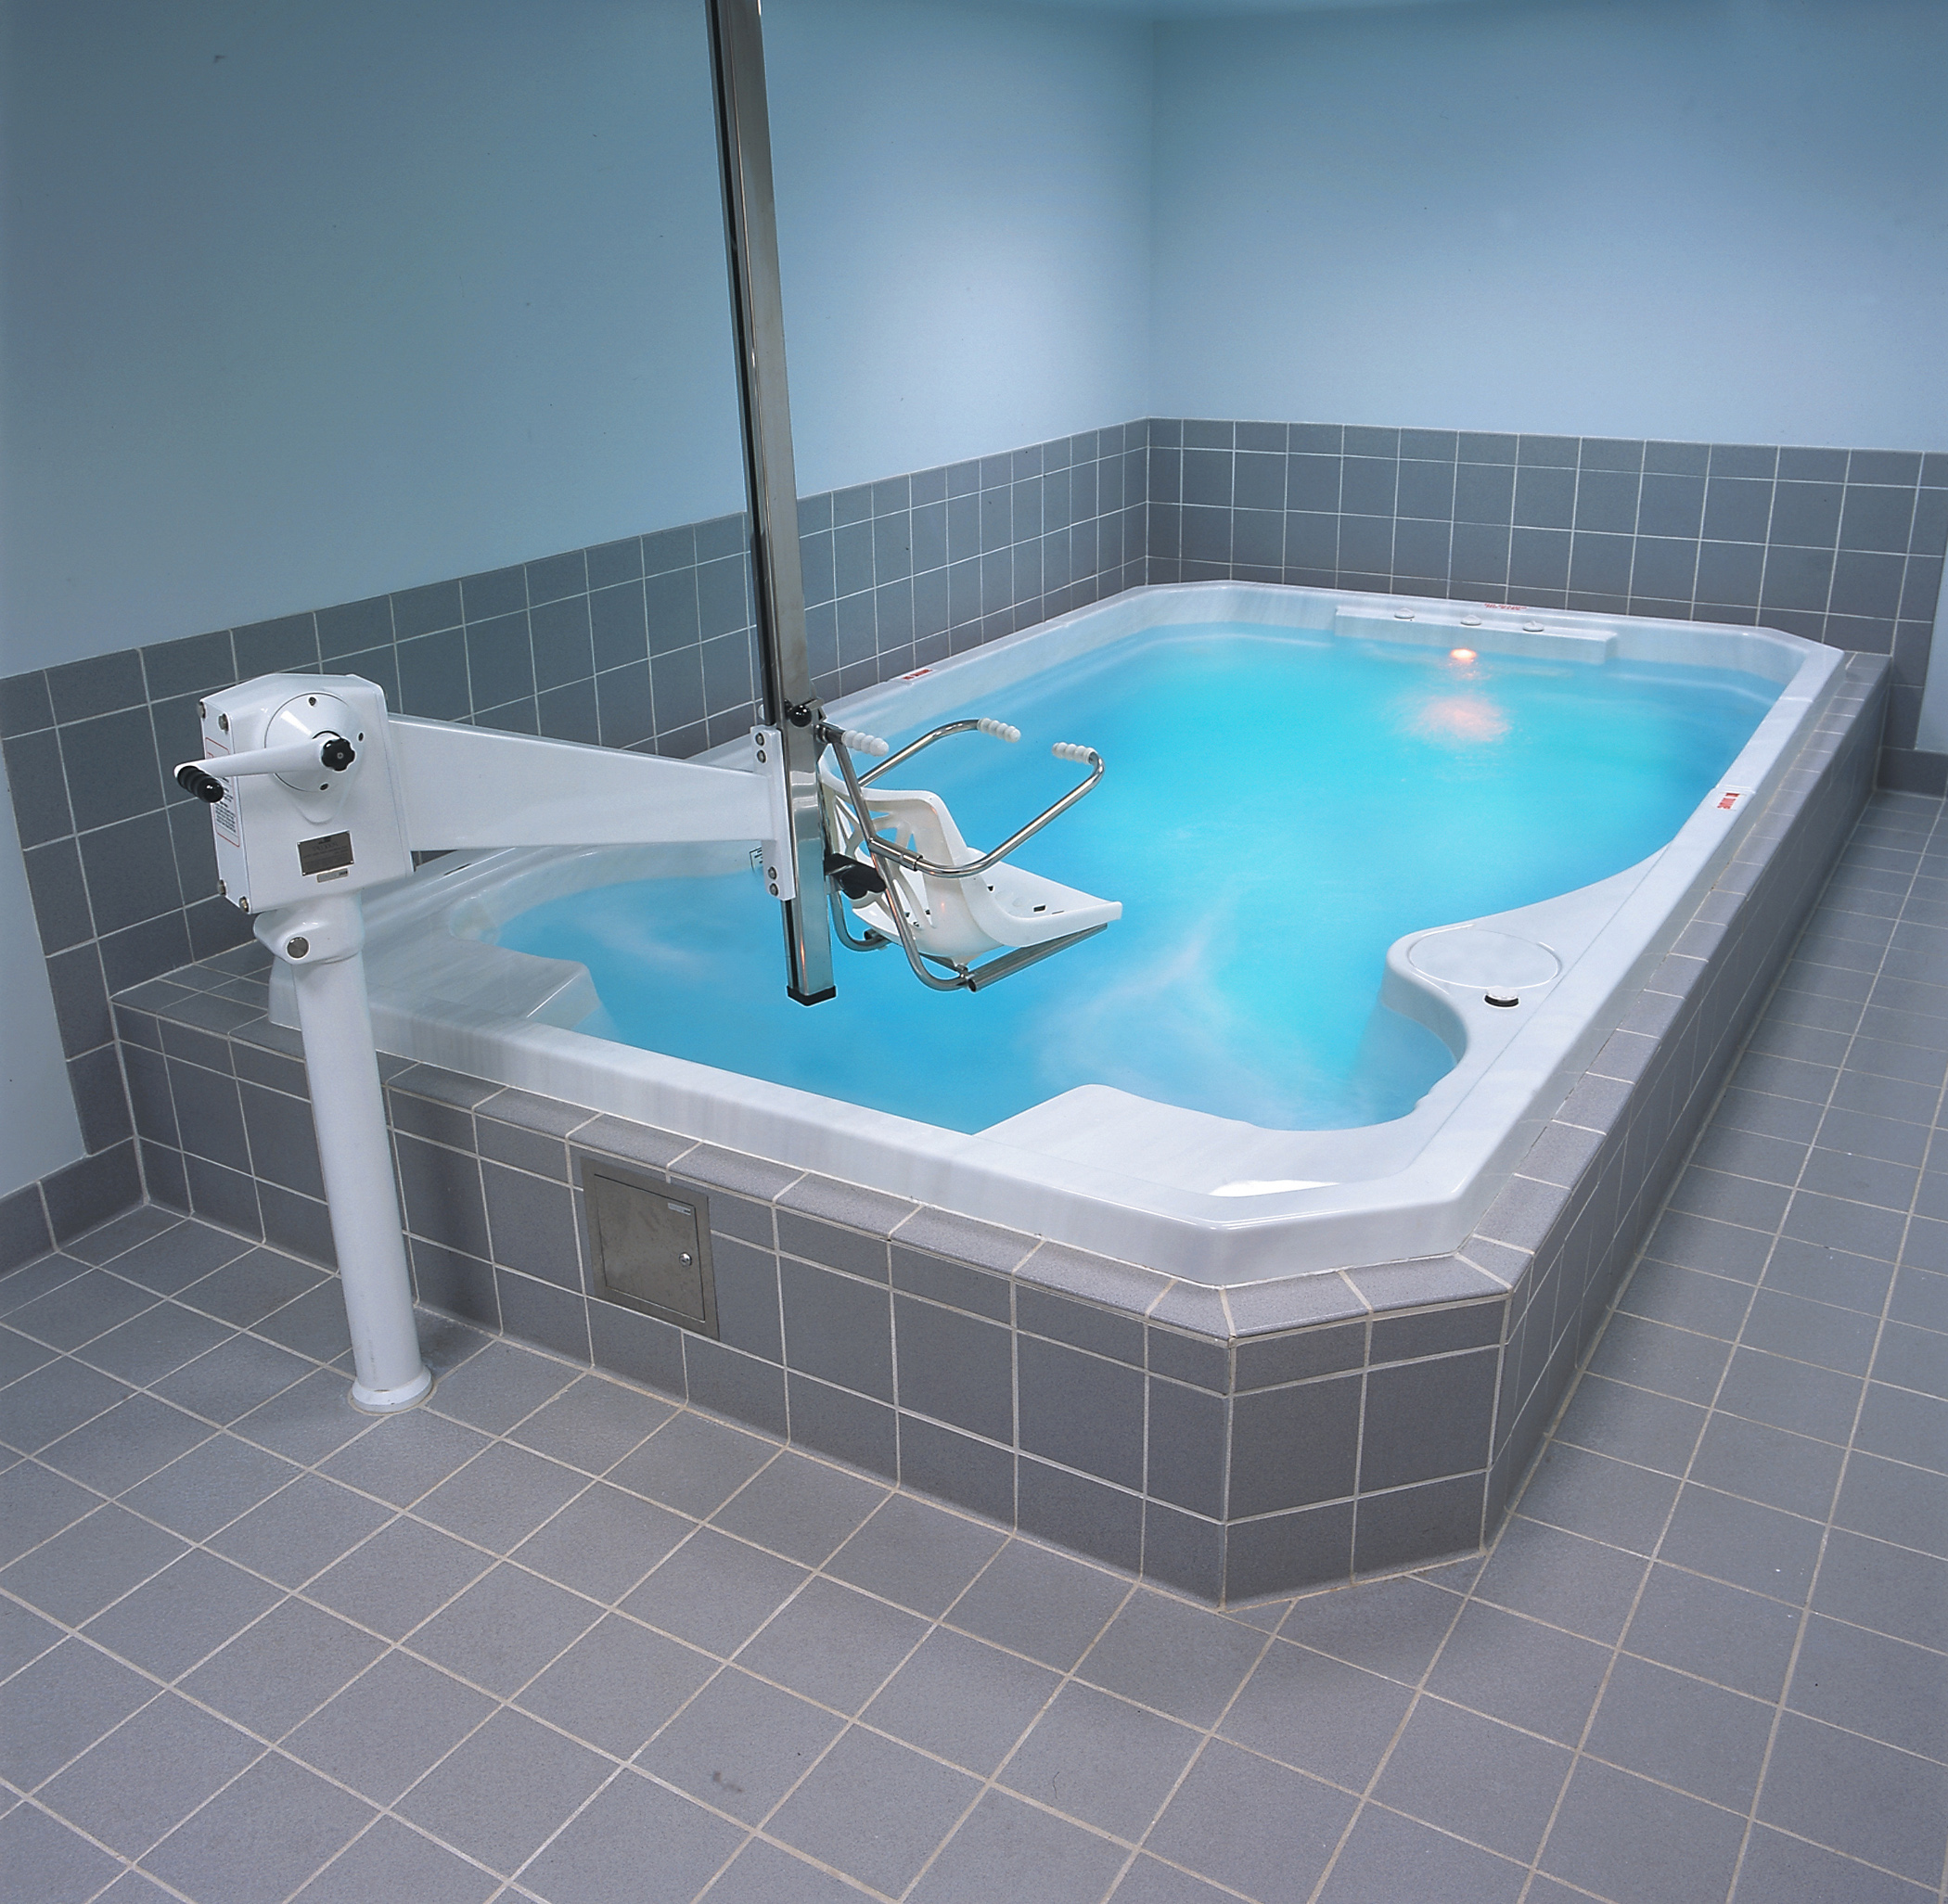 New Minas Swim Spas - Holland Home Leisure - Hydropool Hot Tubs ...